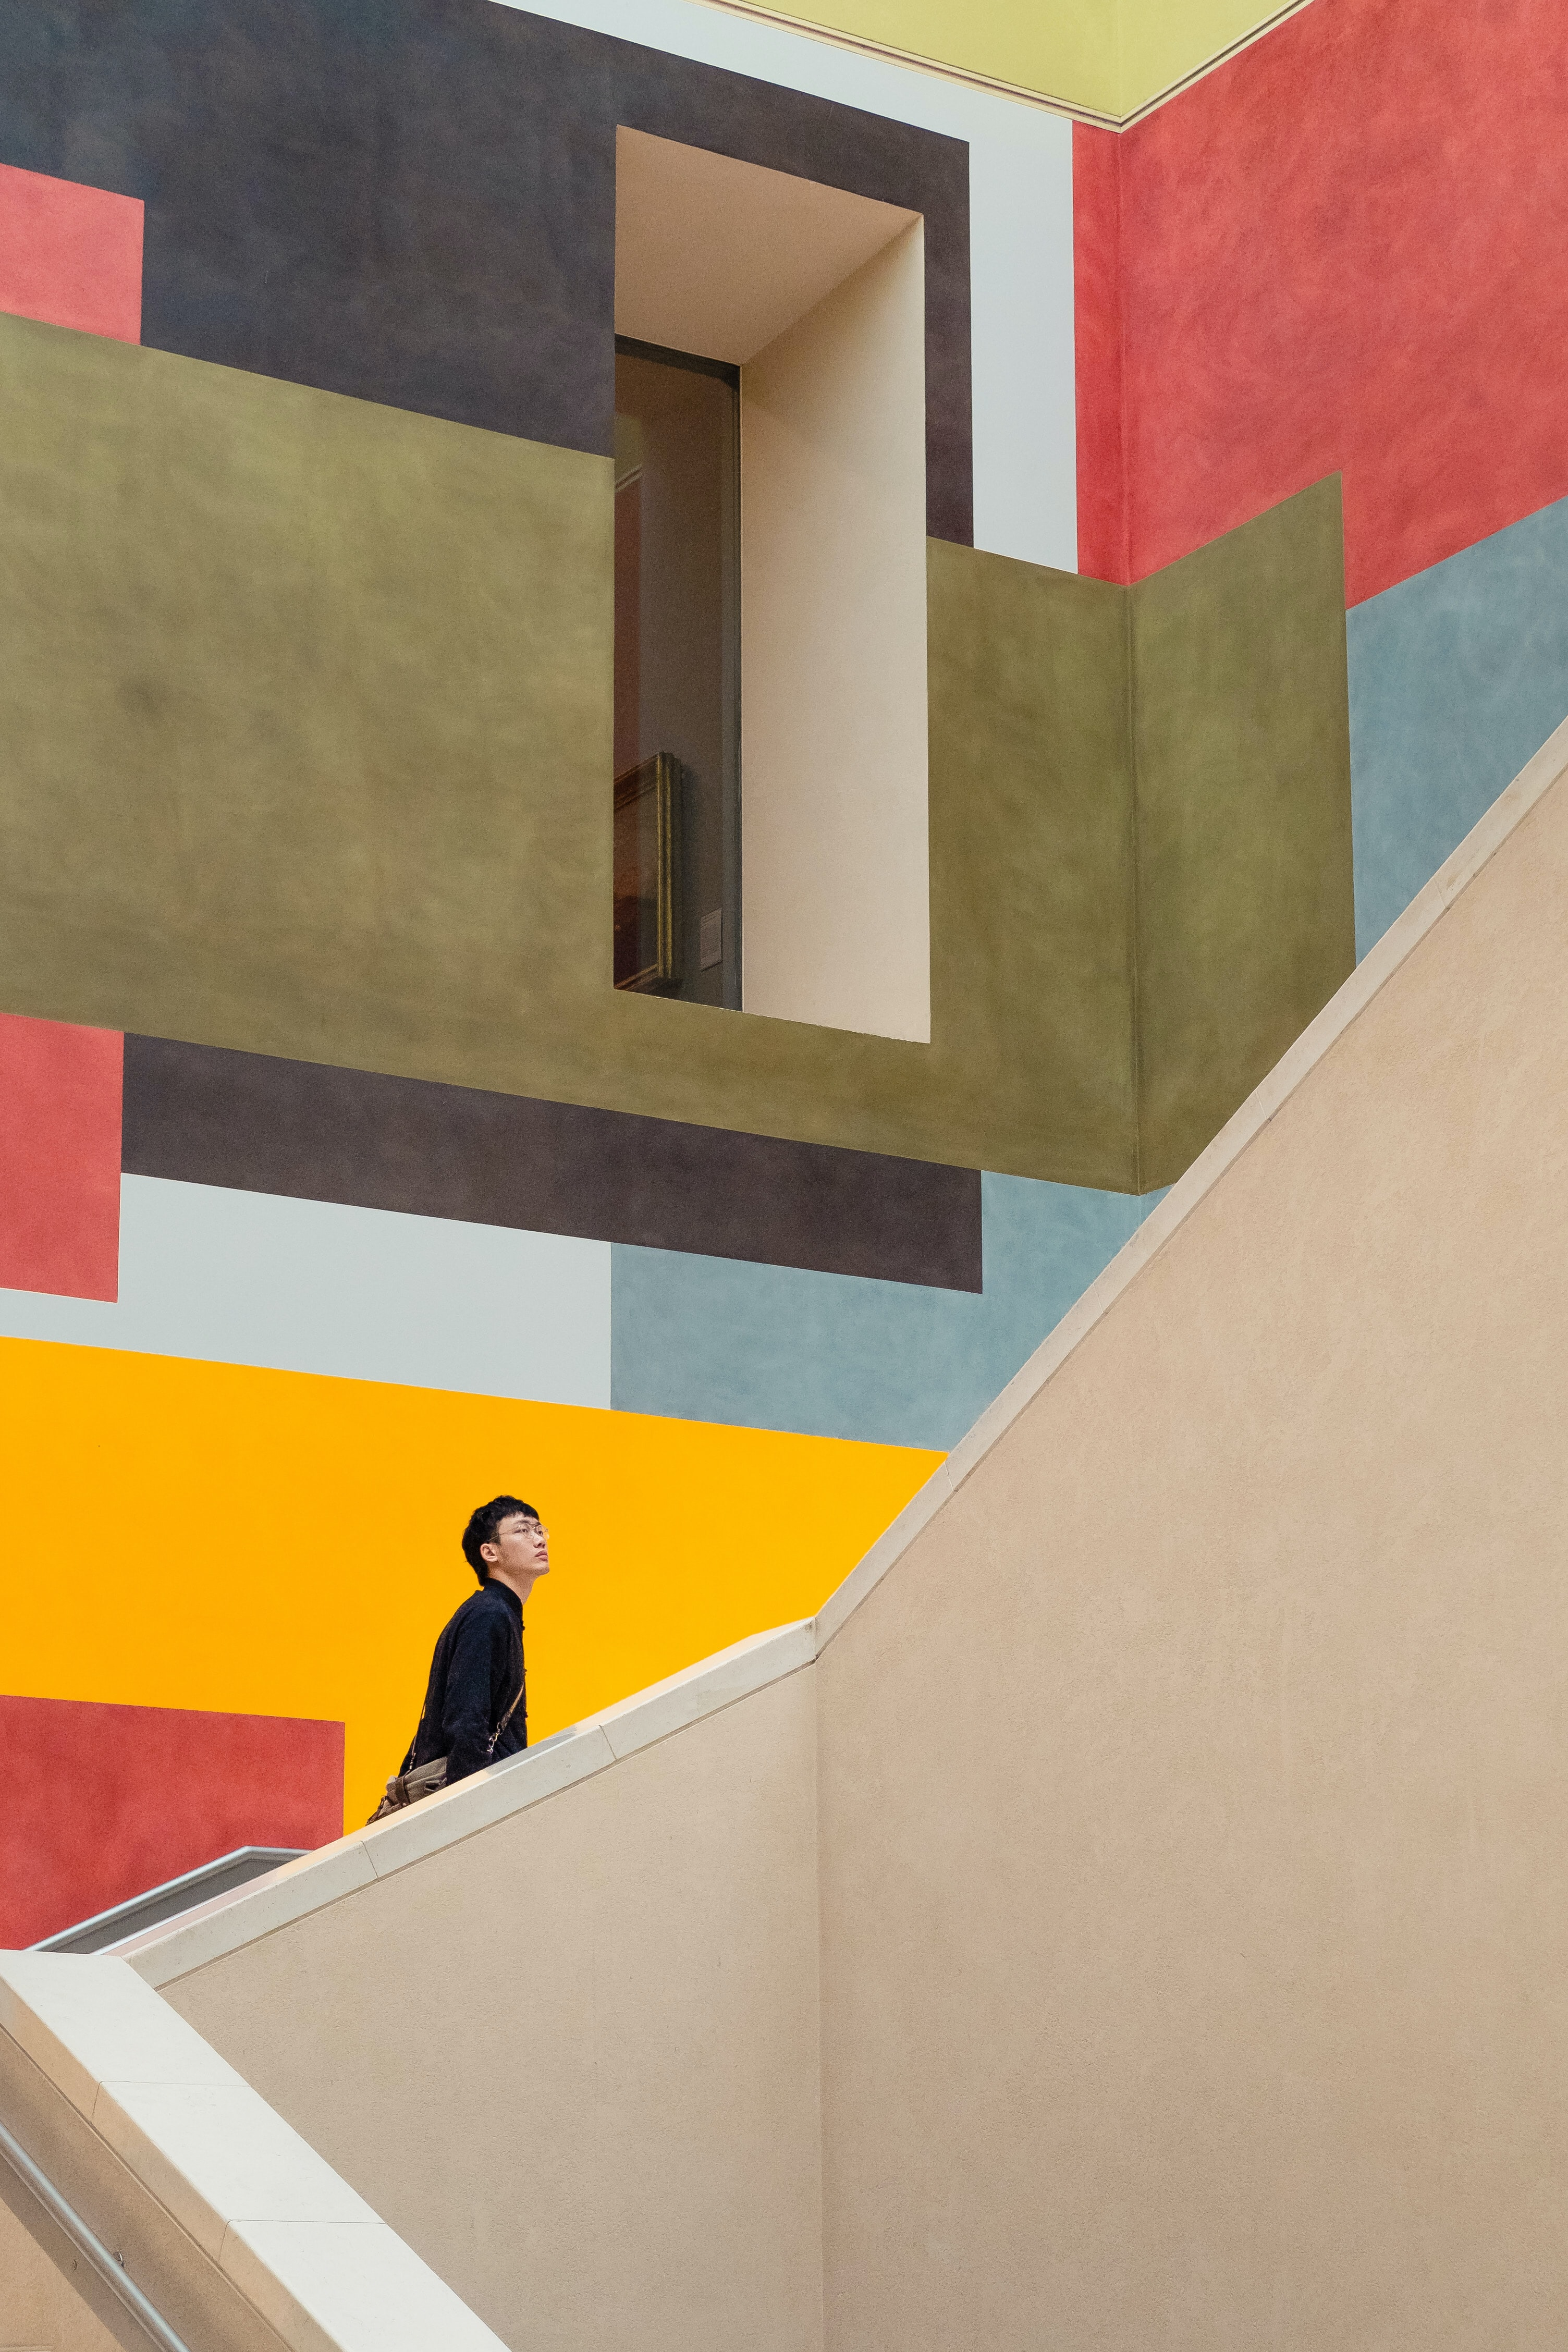 person walking on white spiral staircase looking at multicolored artistic wall